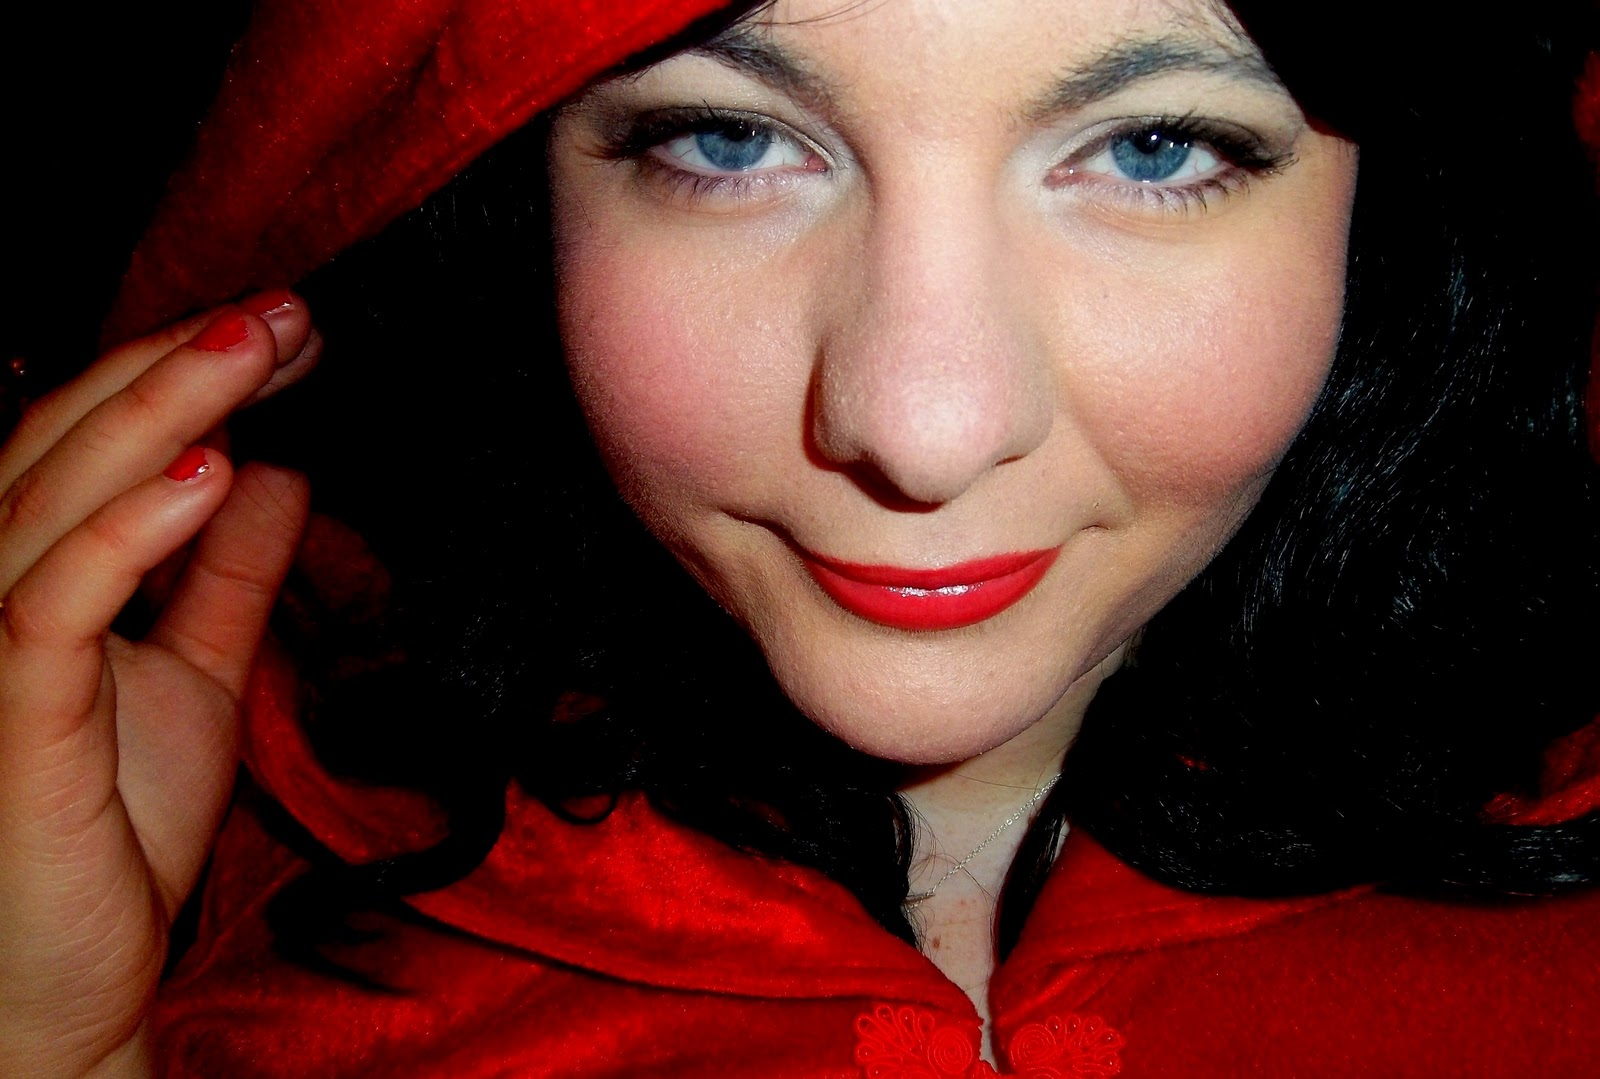 TUTORIAL - Little Red Riding Hood MakeupEvil Little Red Riding Hood Makeup